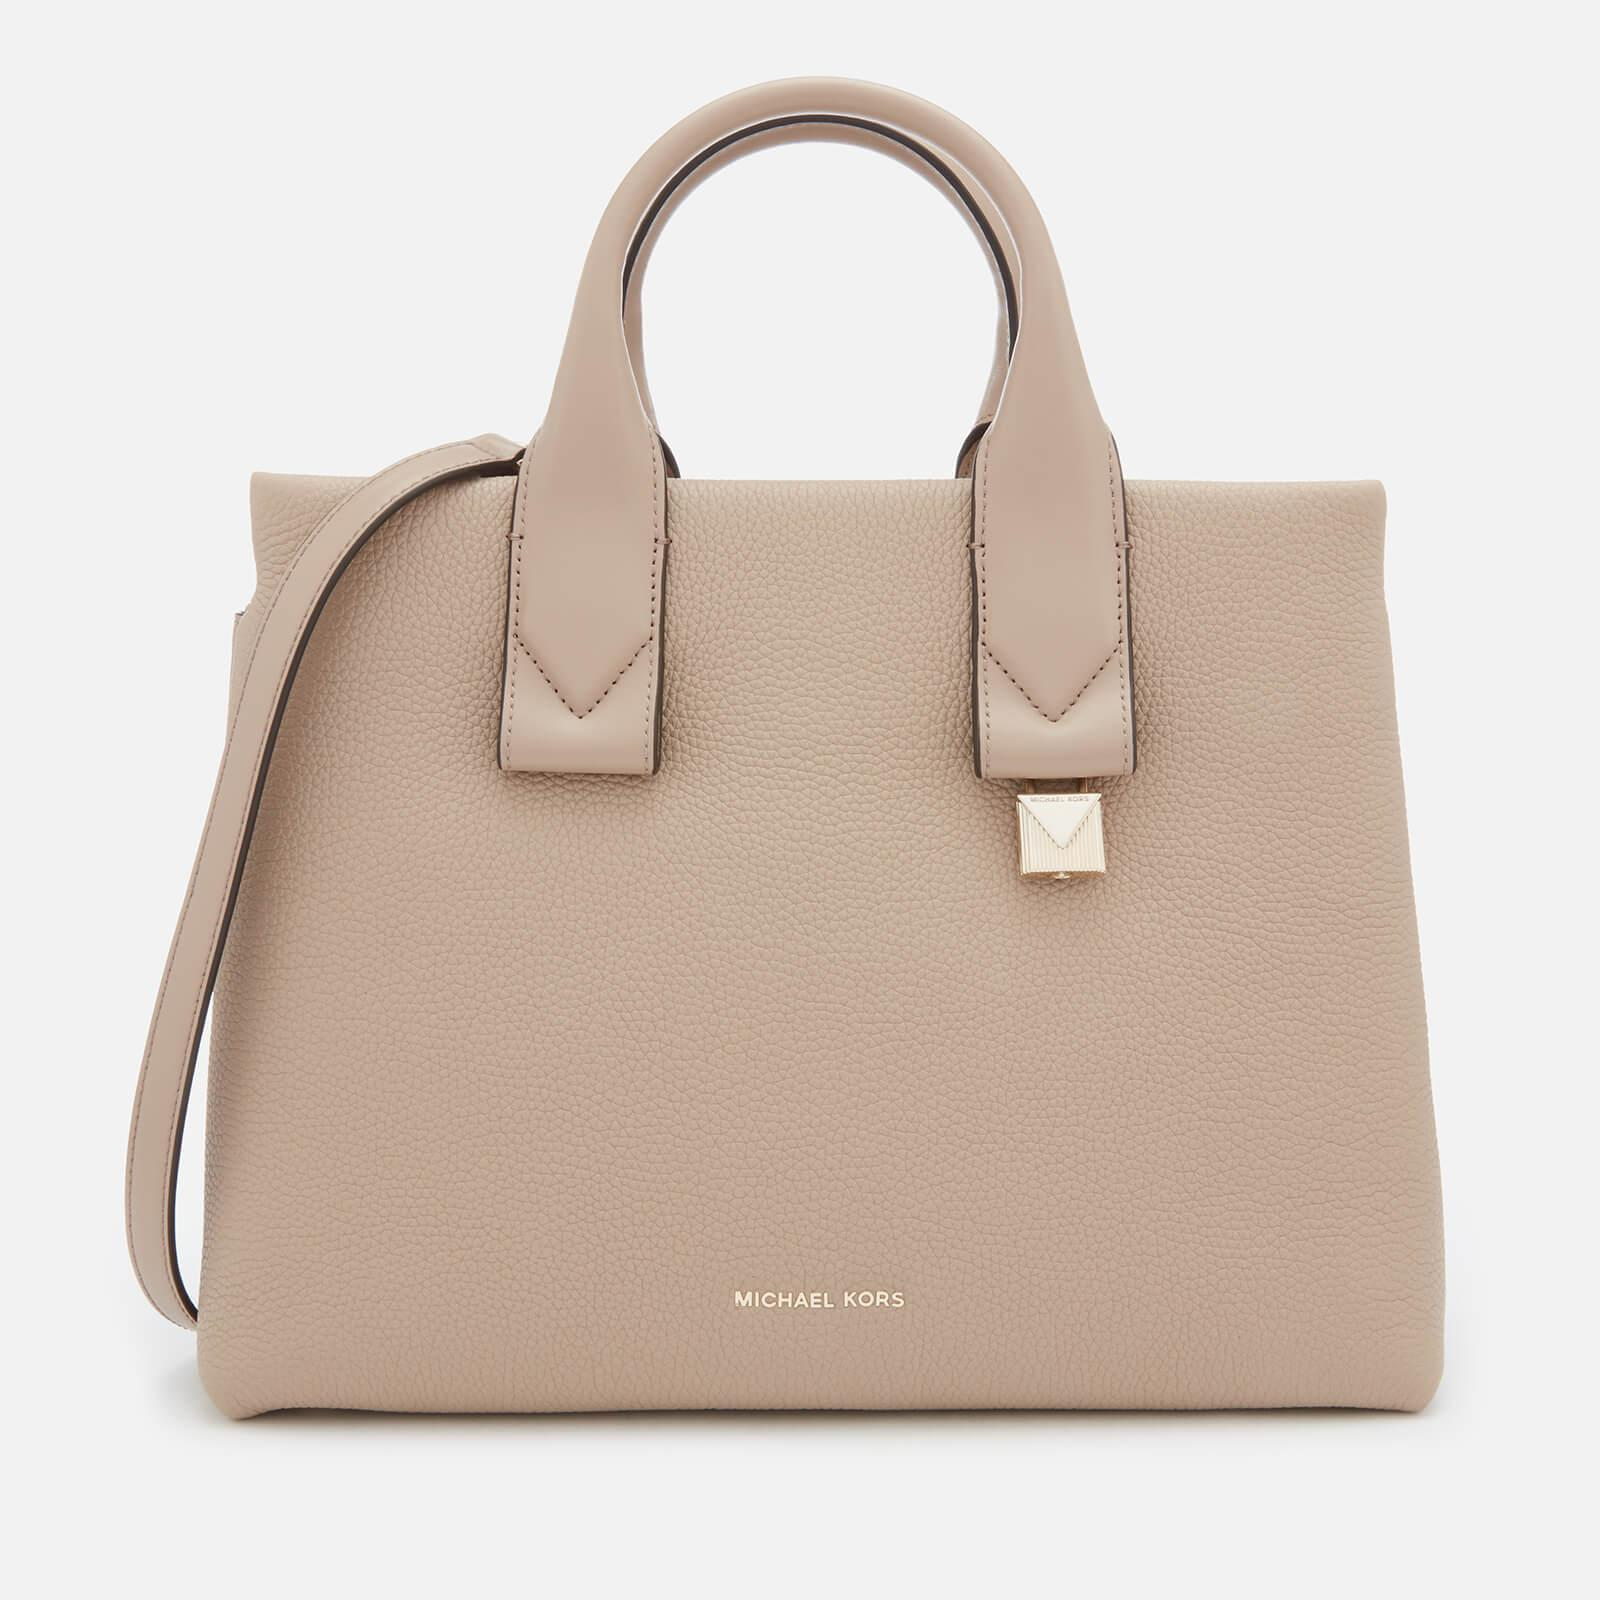 Lyst - MICHAEL Michael Kors Rollins Large Satchel in Natural - Save 17% 6923158ce01f8